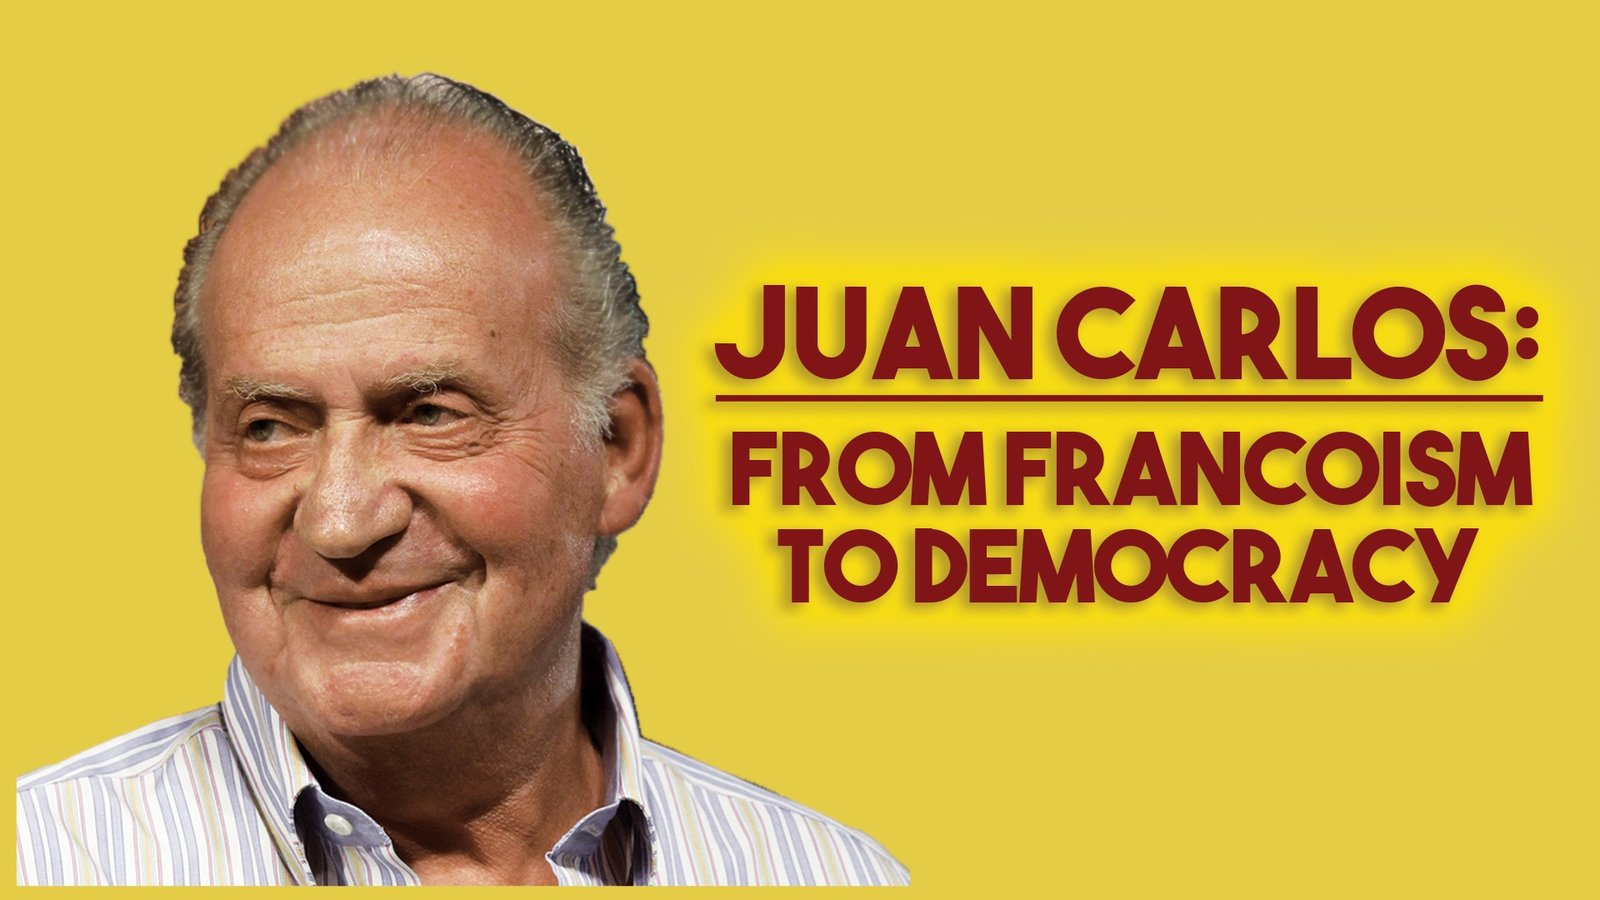 Juan Carlos: From Francoism to Democracy - N.A